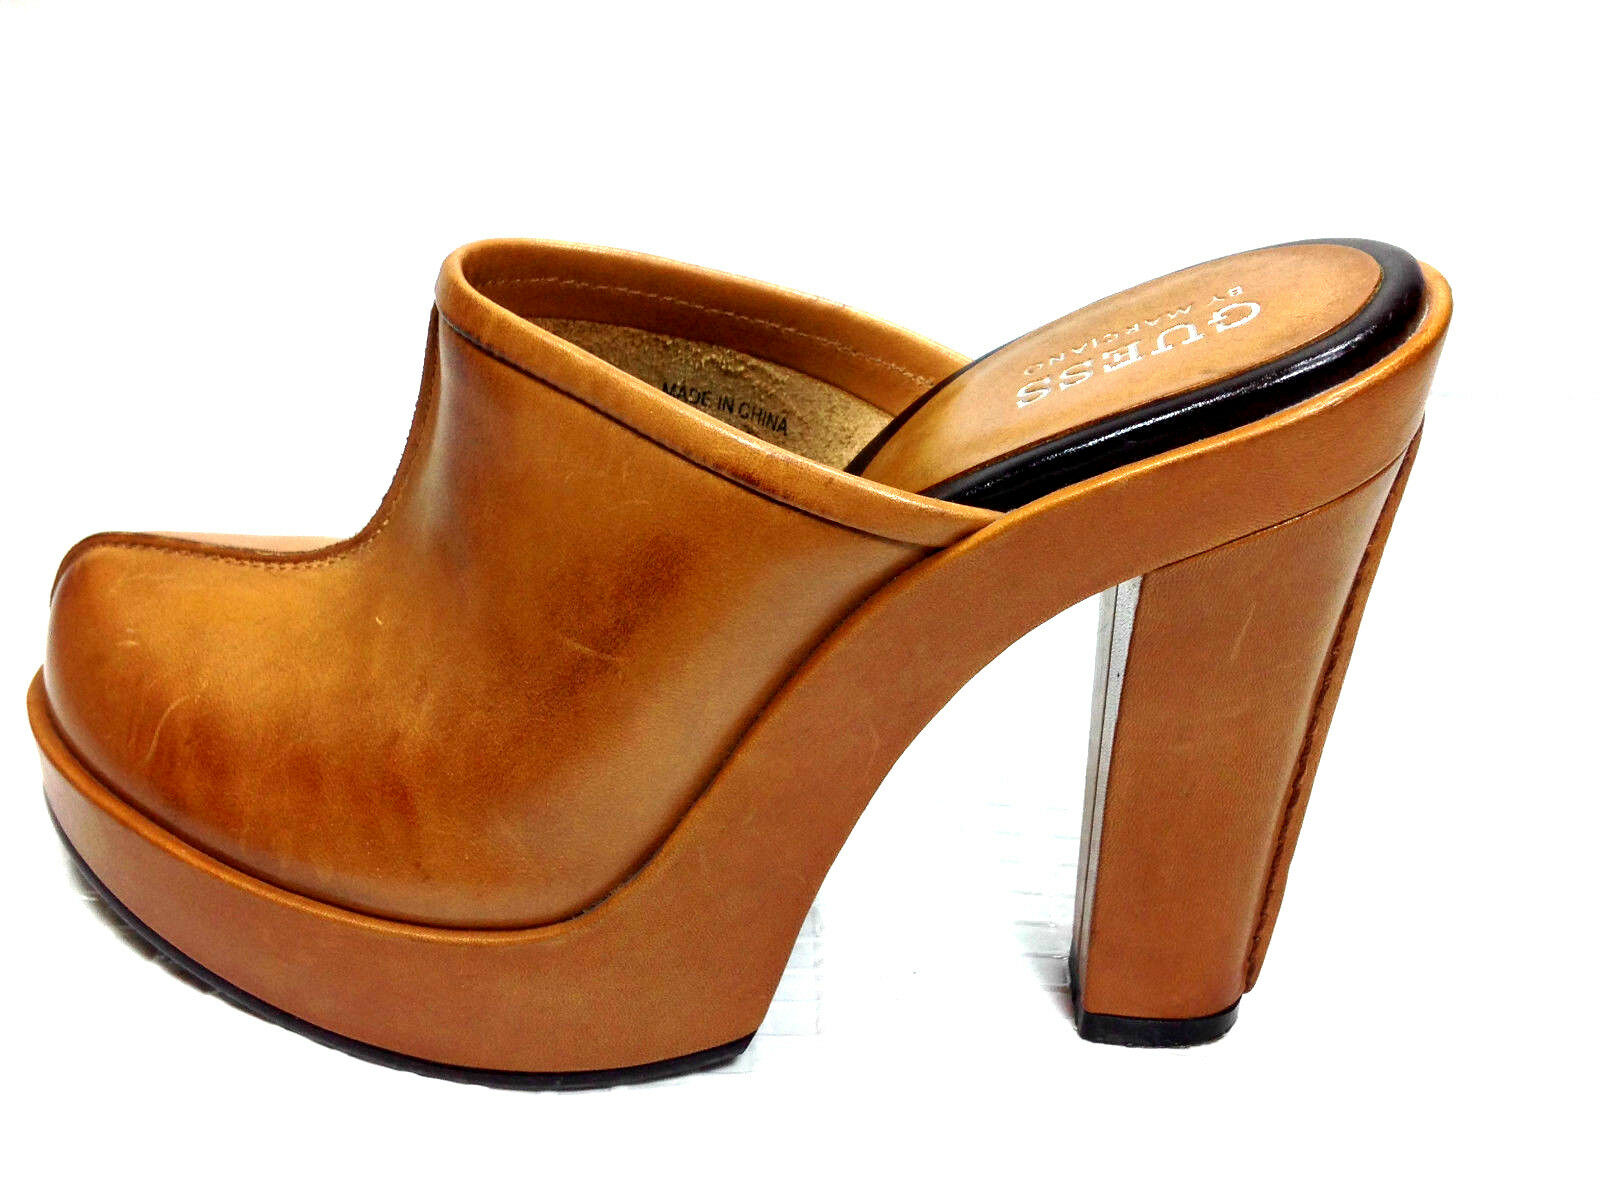 Guess by Marciano Clogs Caramel  Dimensione 5.5  USA.